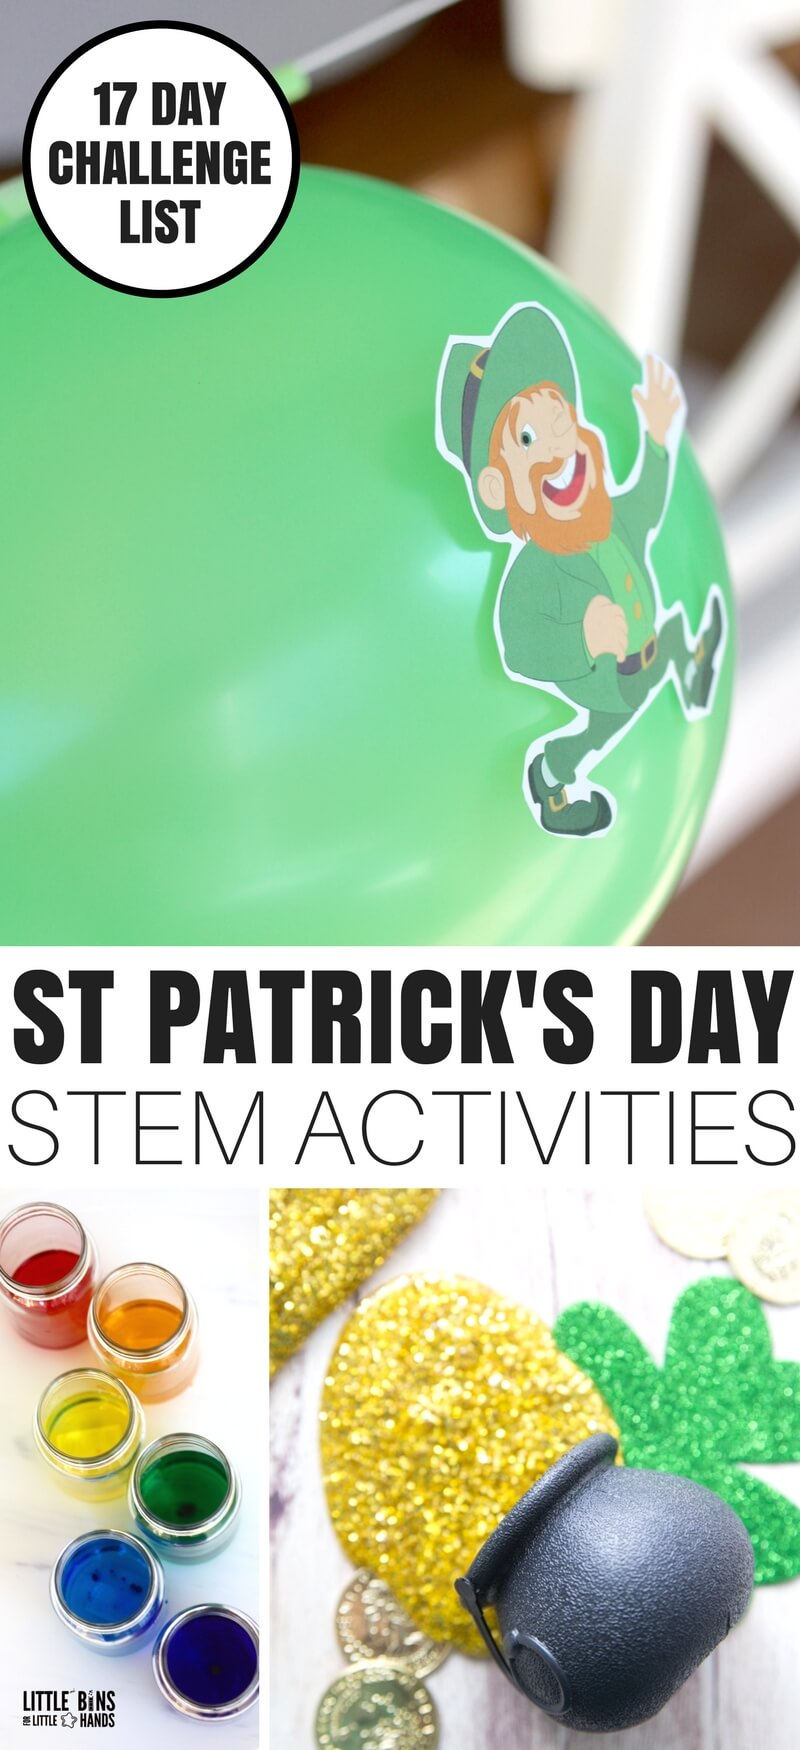 St Patrick's Day activities for STEM and Science learning.